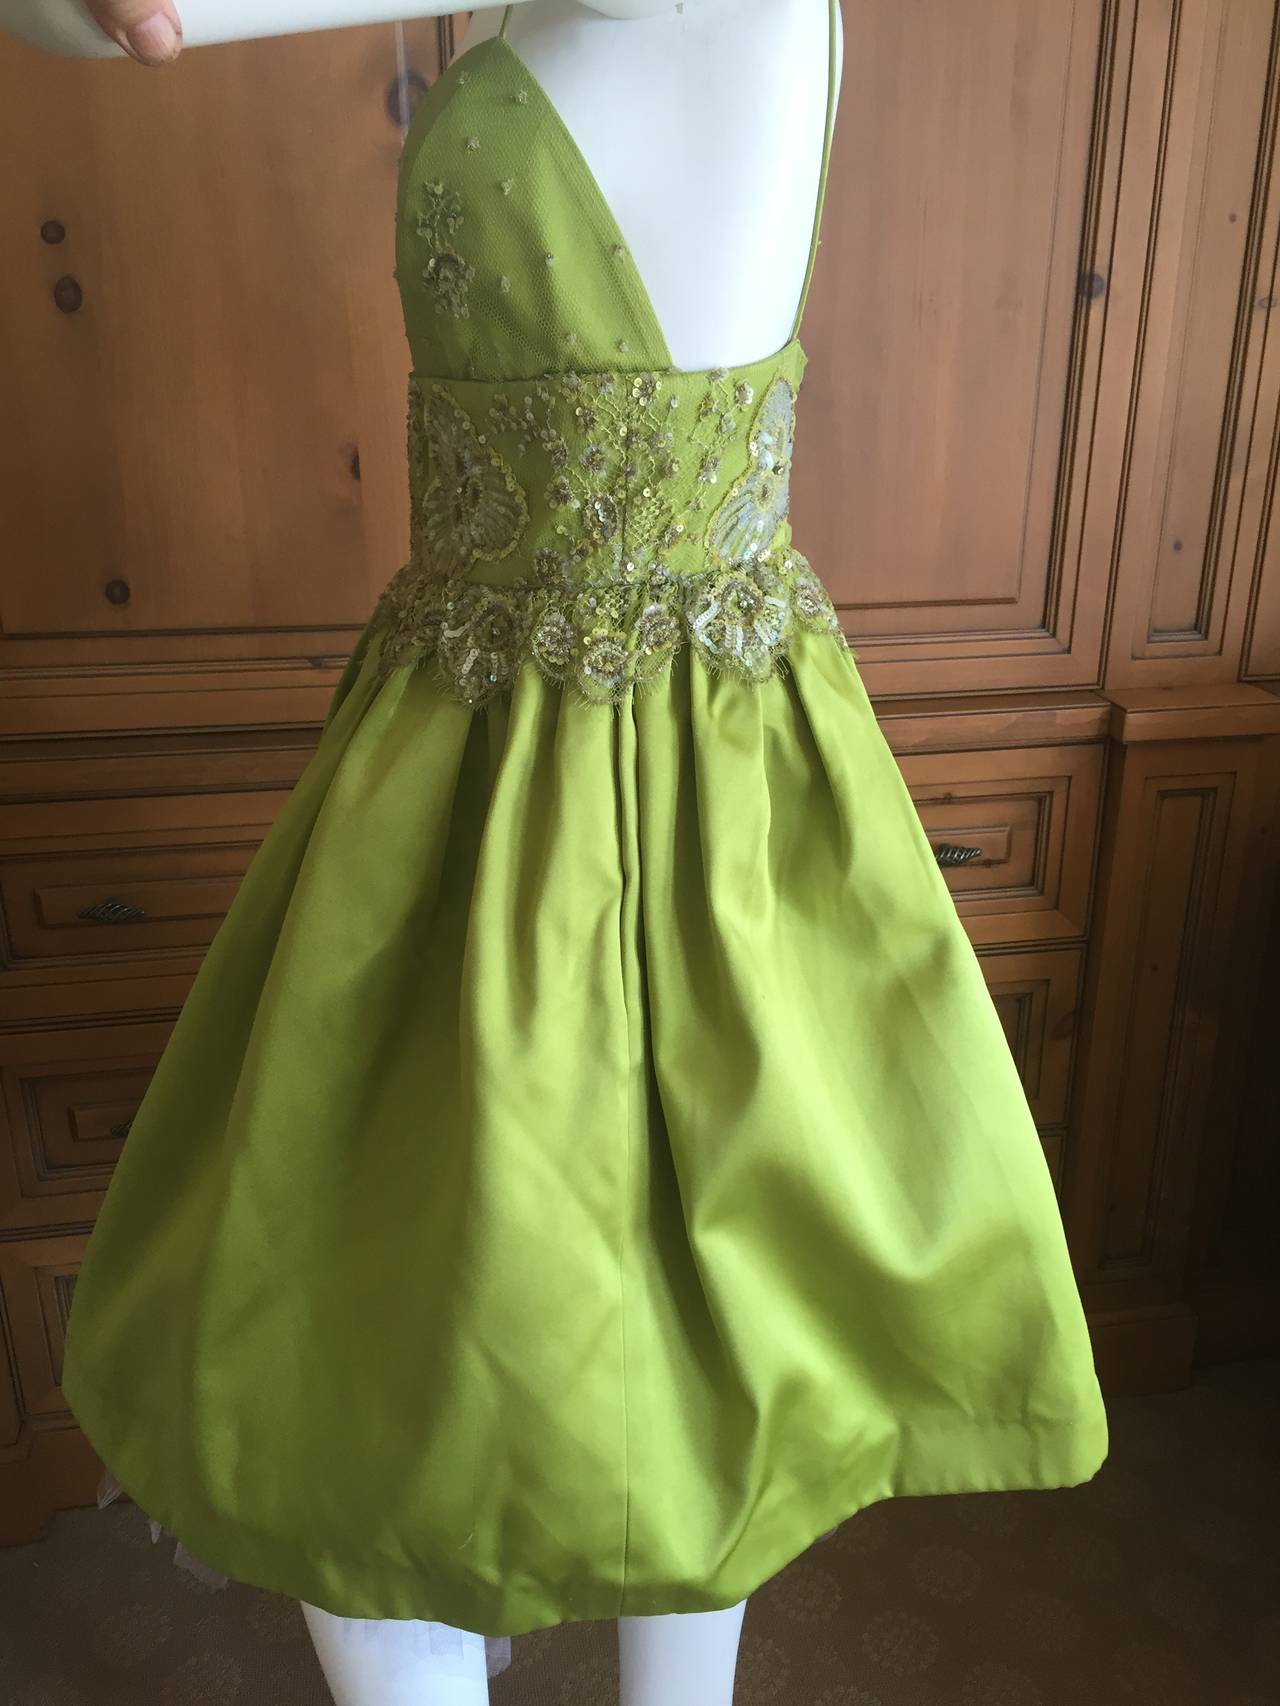 Bill Blass Vintage Green Silk Dress w Lace Embellishments 5